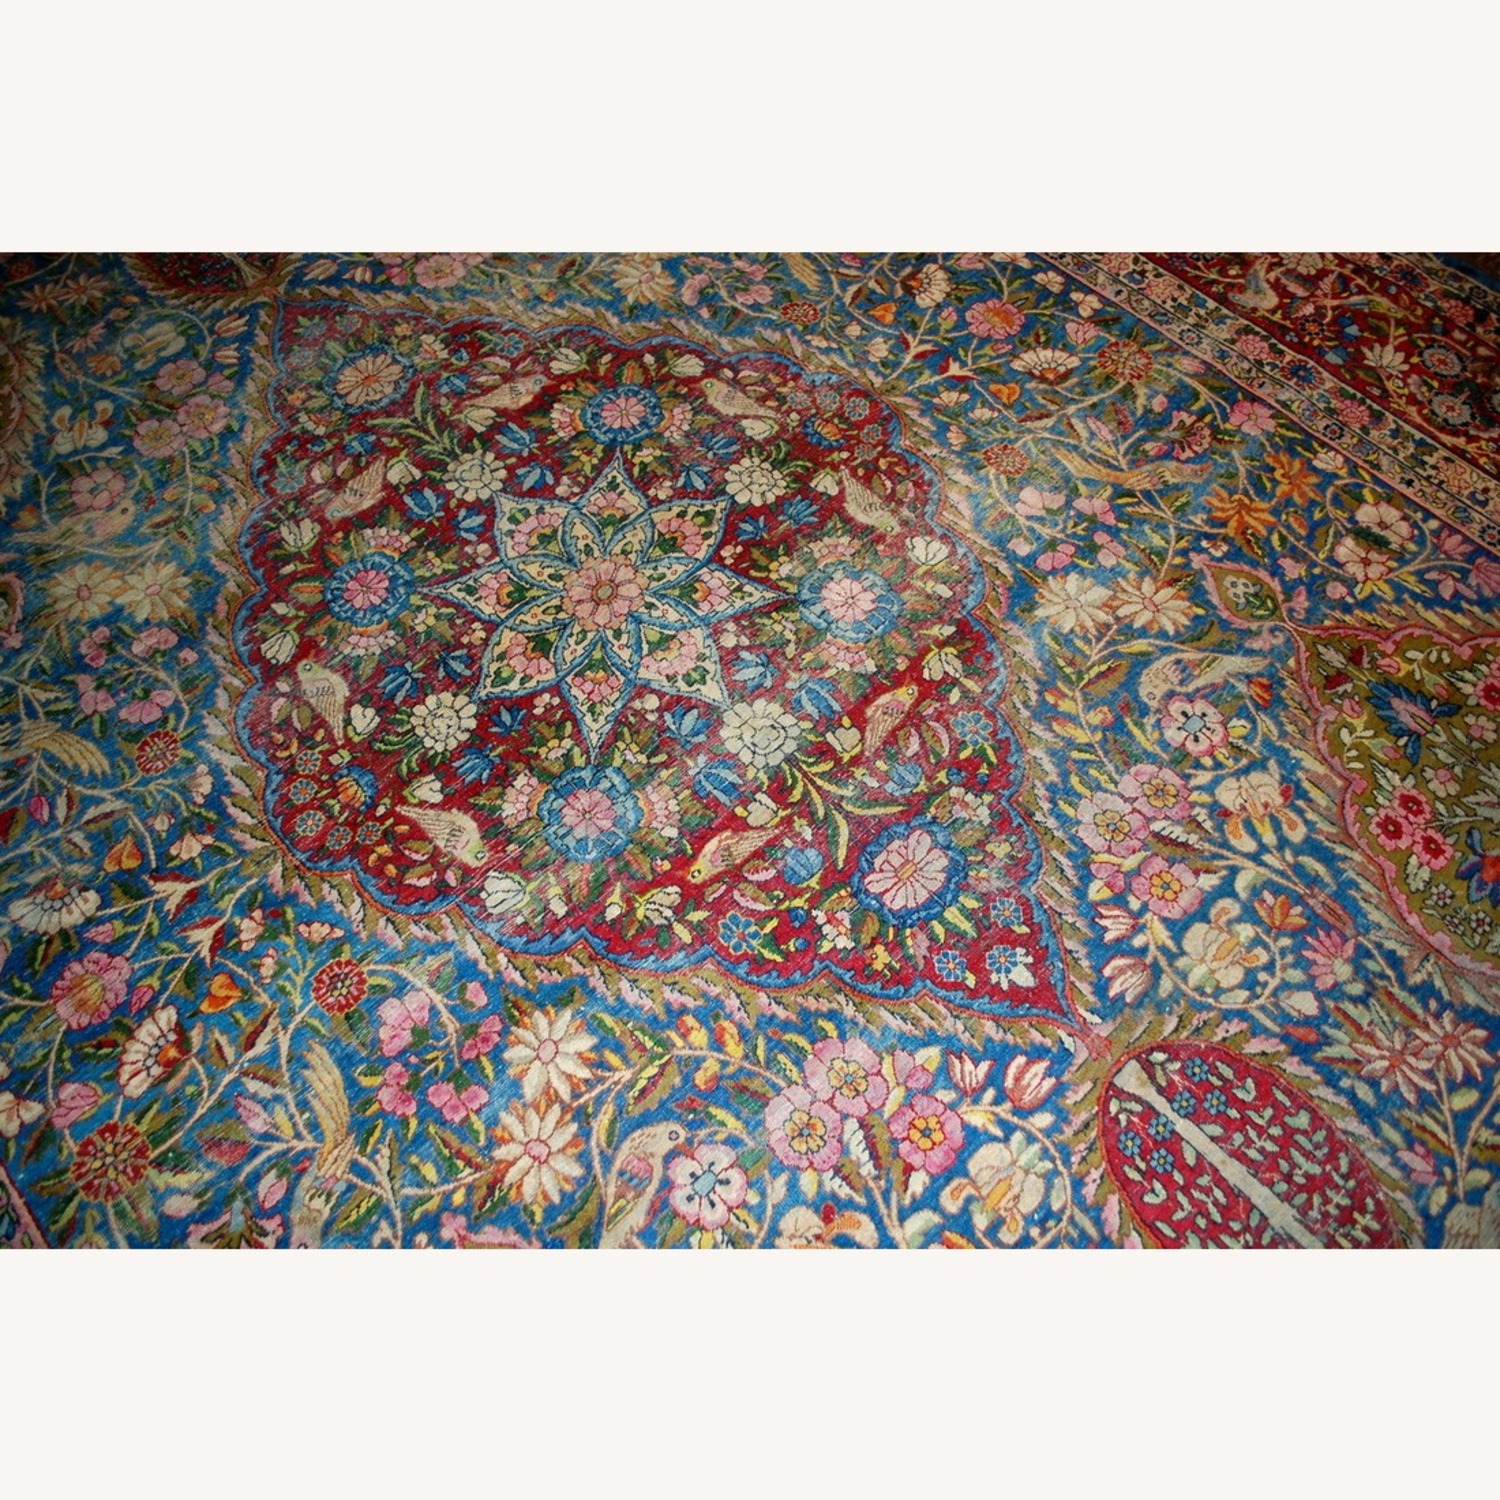 Hand made Antique Persian Yazd Rug - image-11